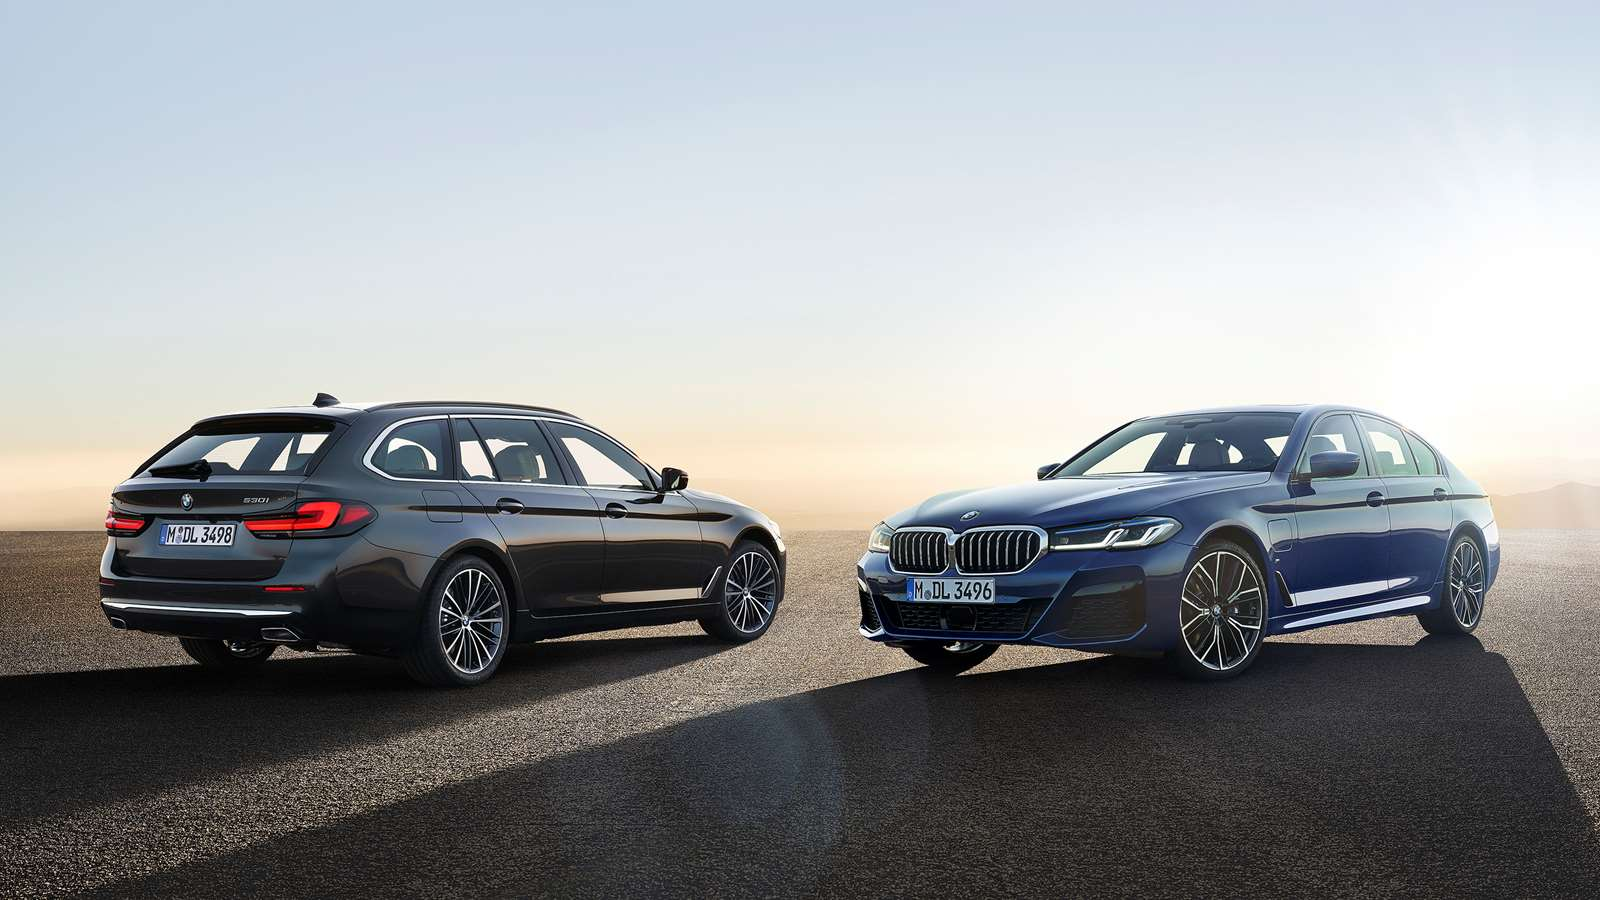 2020 BMW 5 series saloon and estate